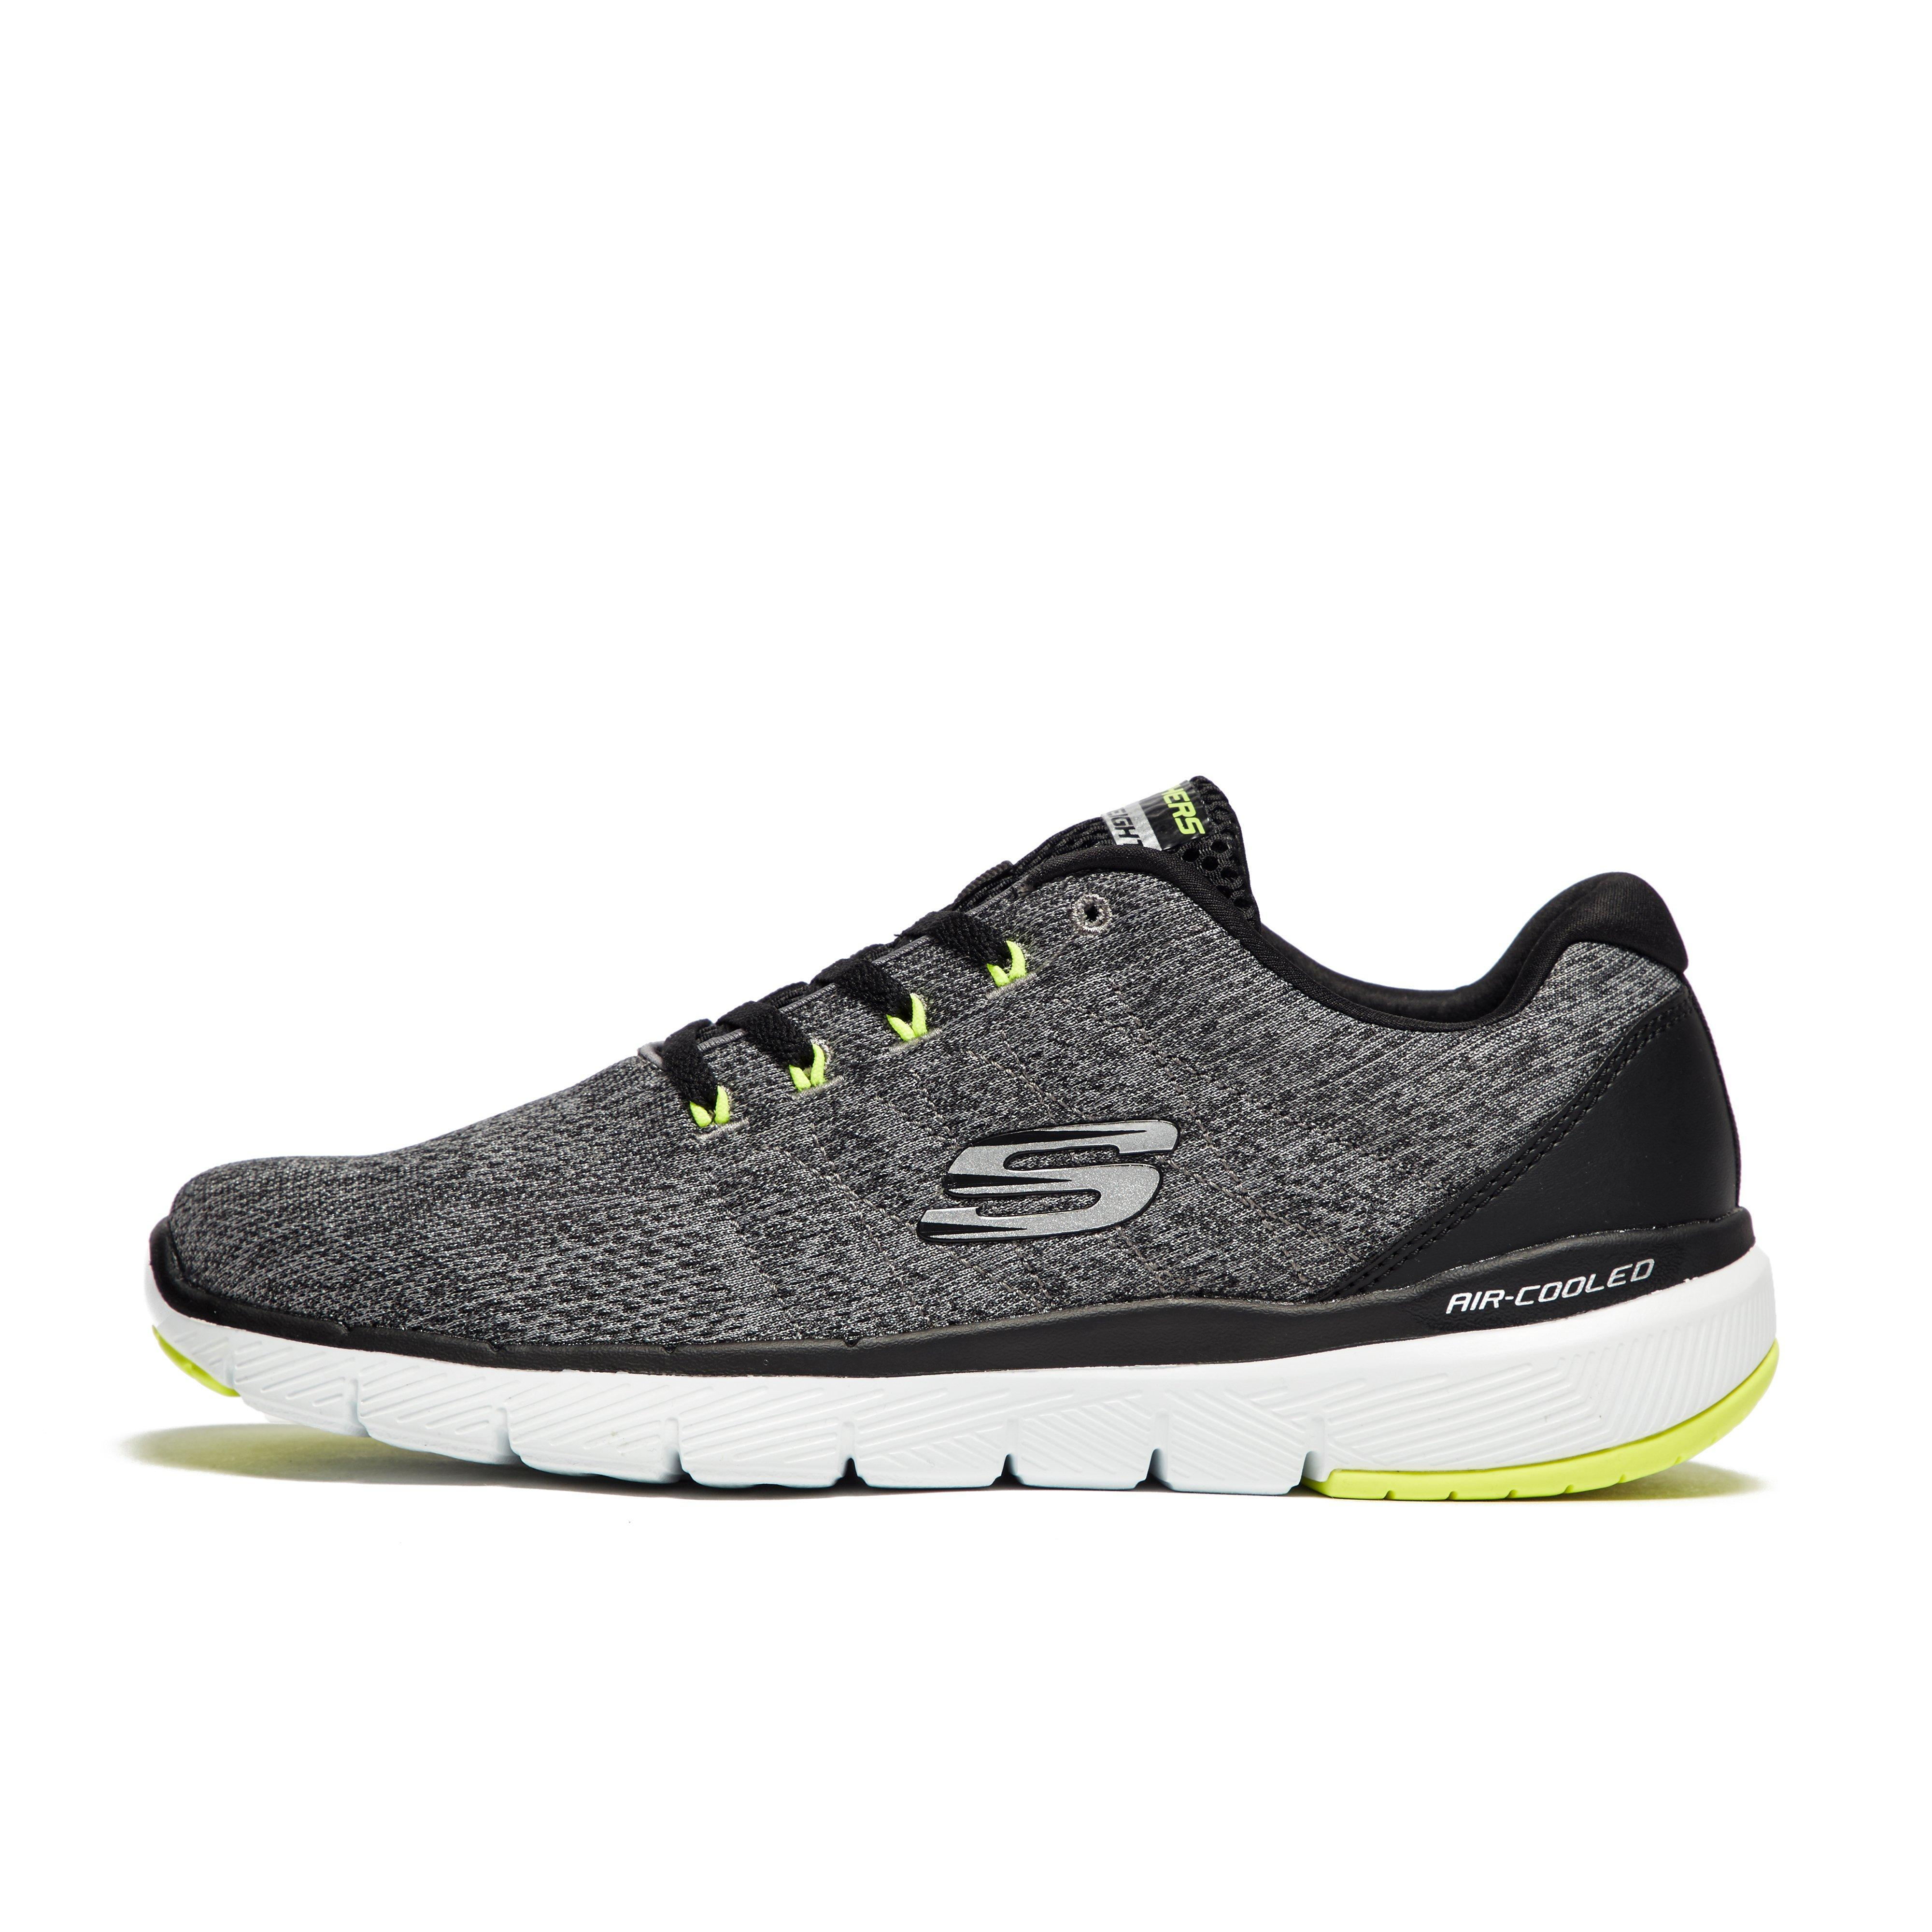 71b7662b9 Details about Skechers Flex Advantage 3.0 Stally Men's Training Shoes